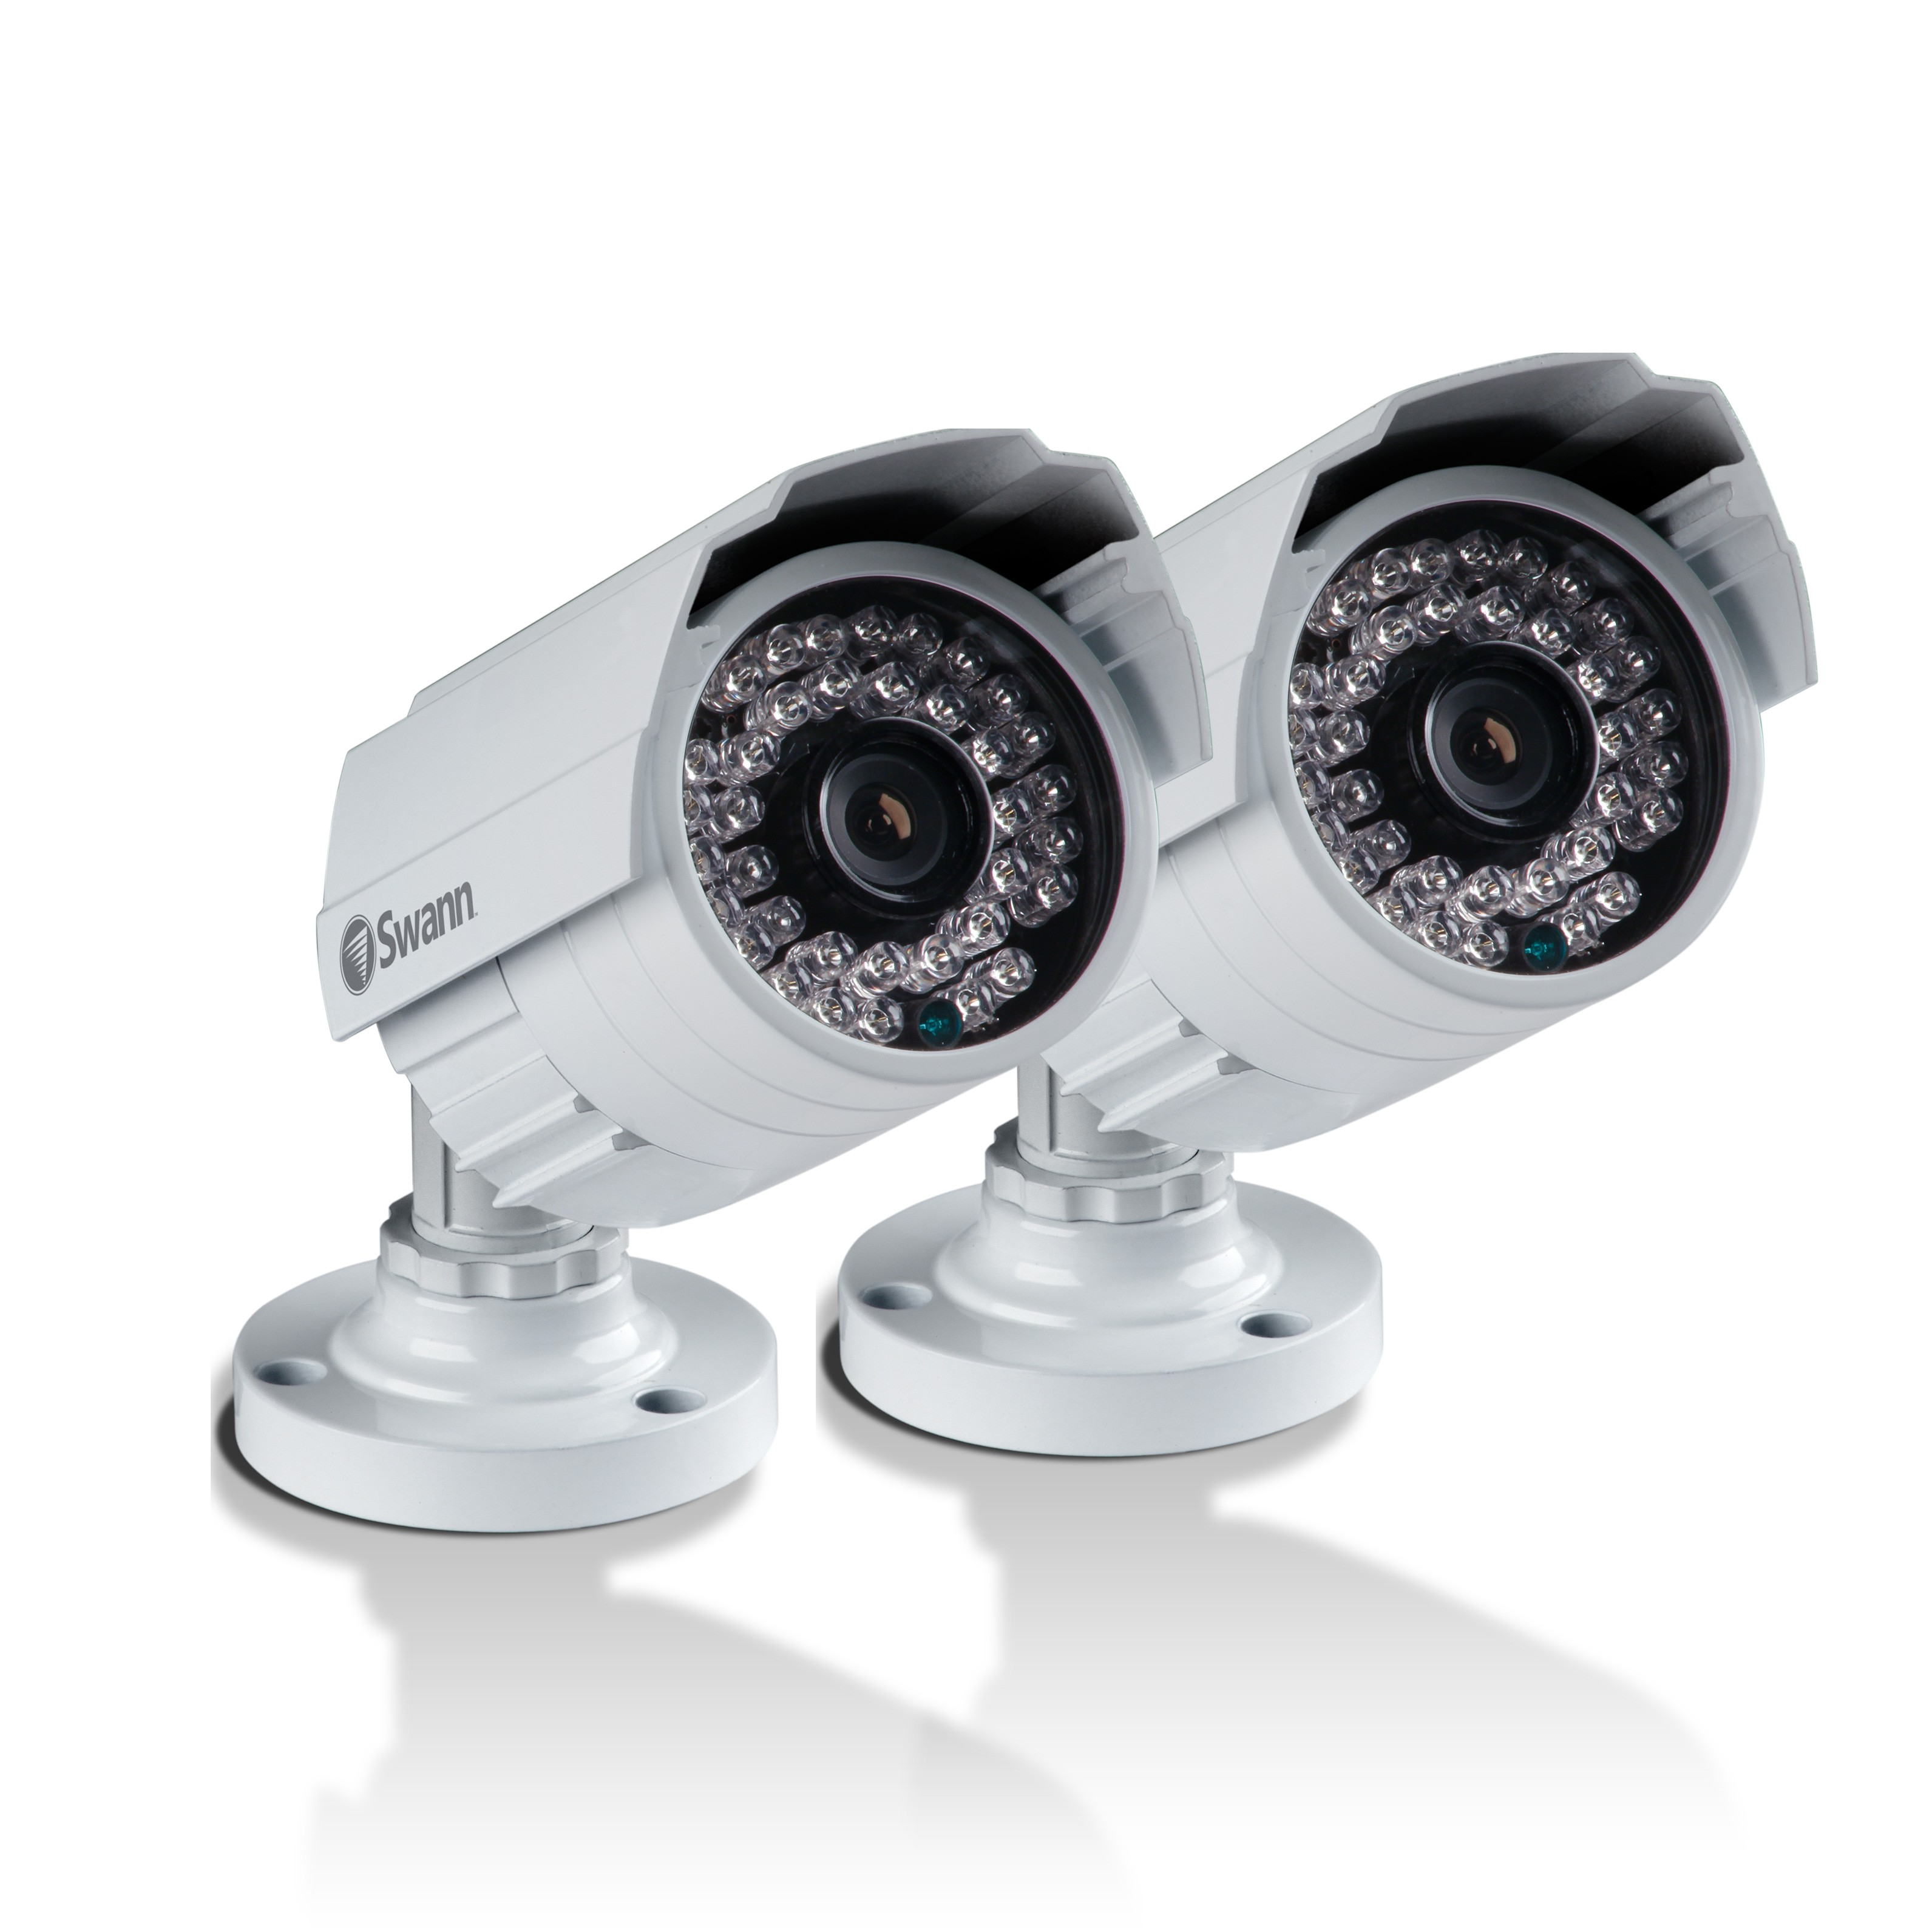 PRO-842 twin pack security camera with night vision USA